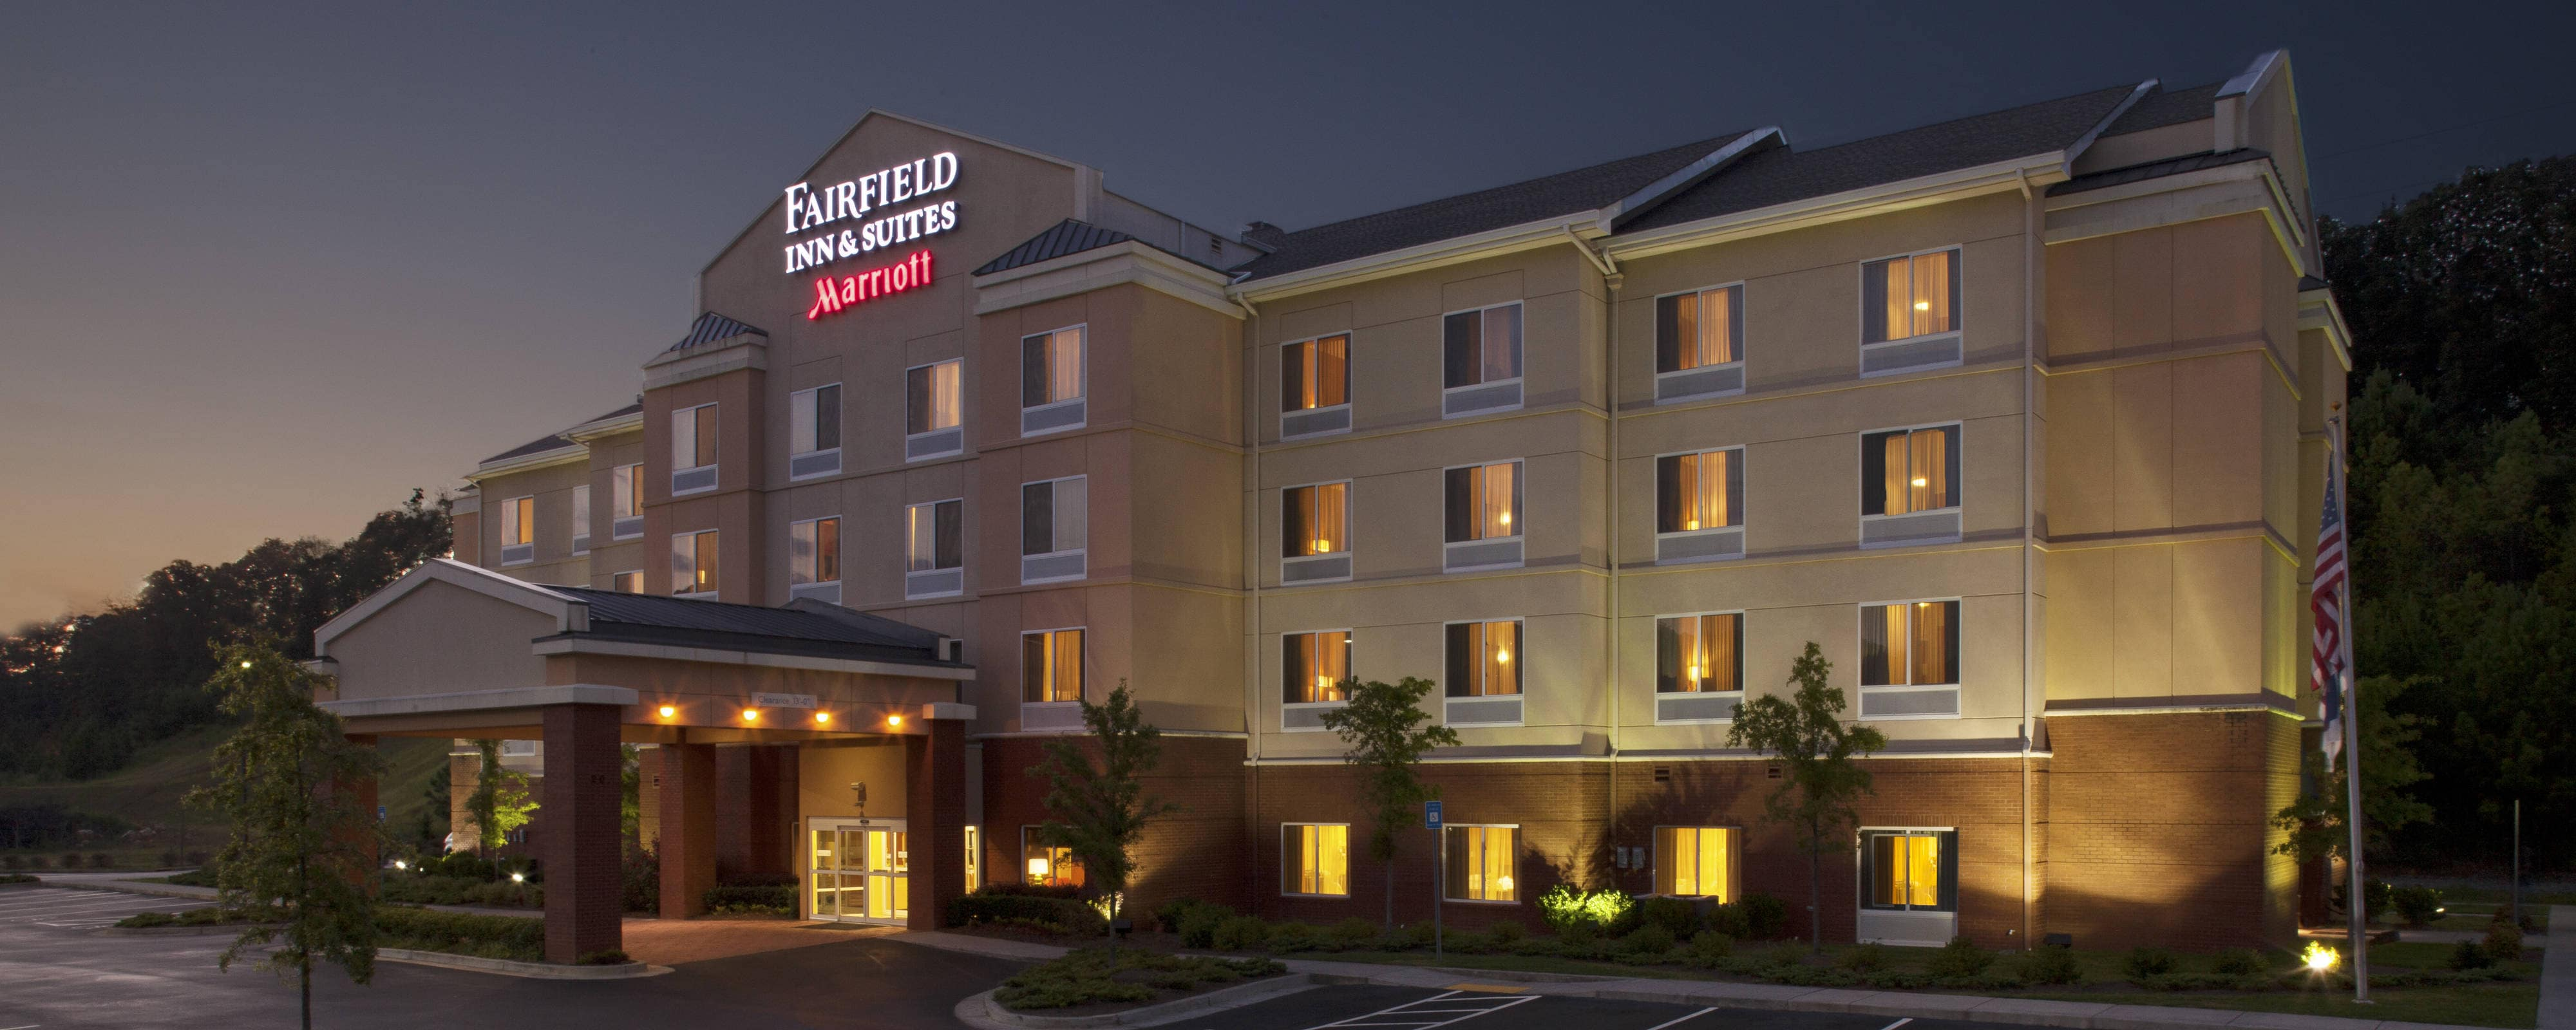 CARTERSVILLE FAIRFIELD INN & SUITES